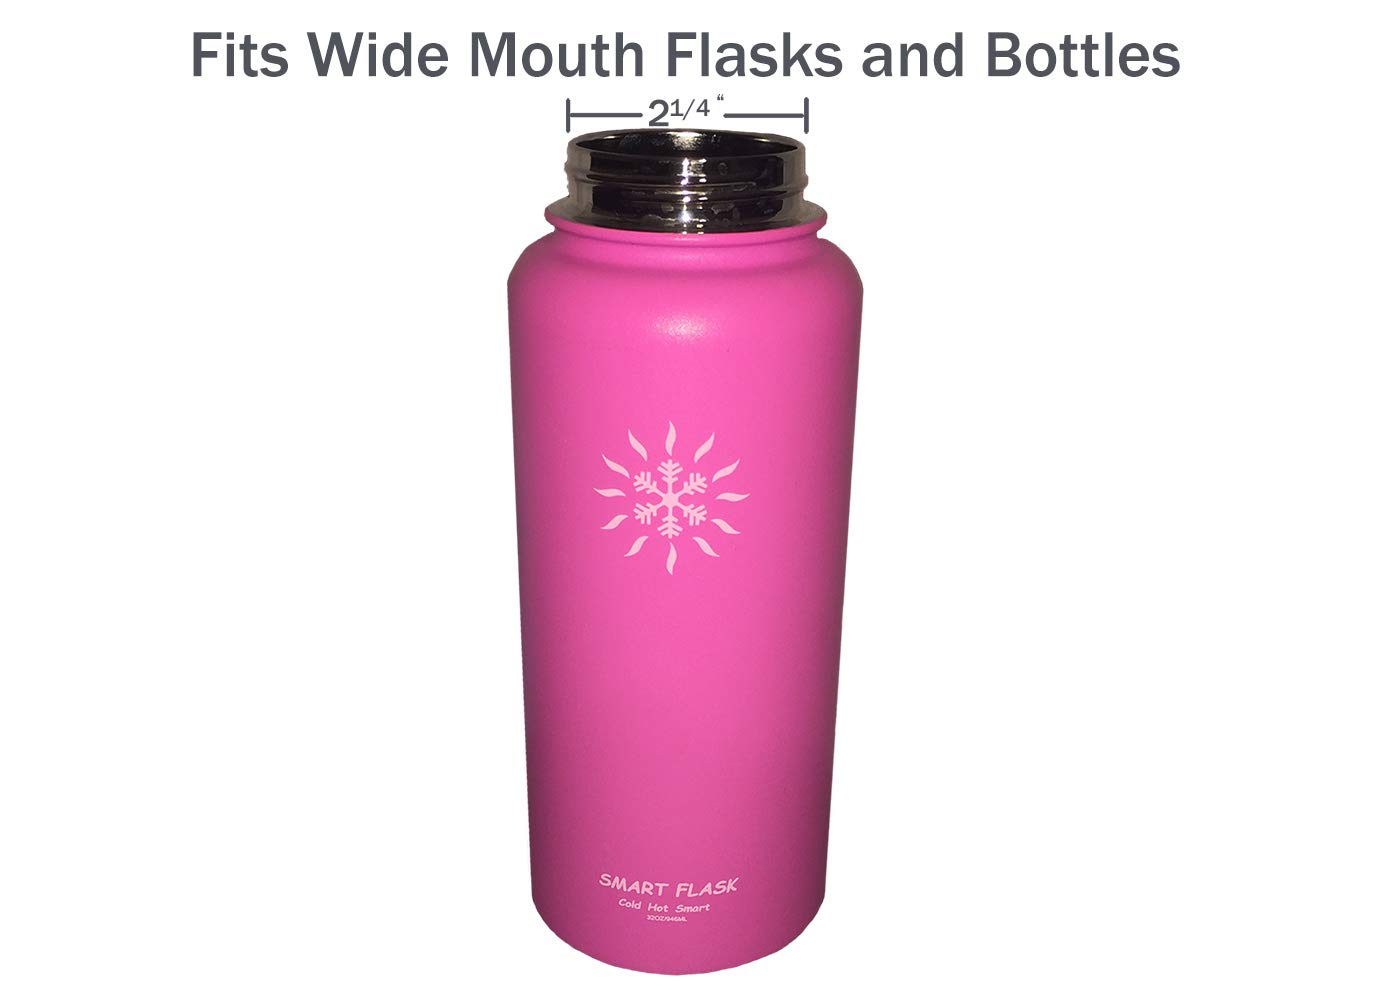 Smart Flask Biteproof Straw lid Replacement for Wide Mouth Flasks and Bottles with 2 lids 4 Straws and 2 Straw Brushes